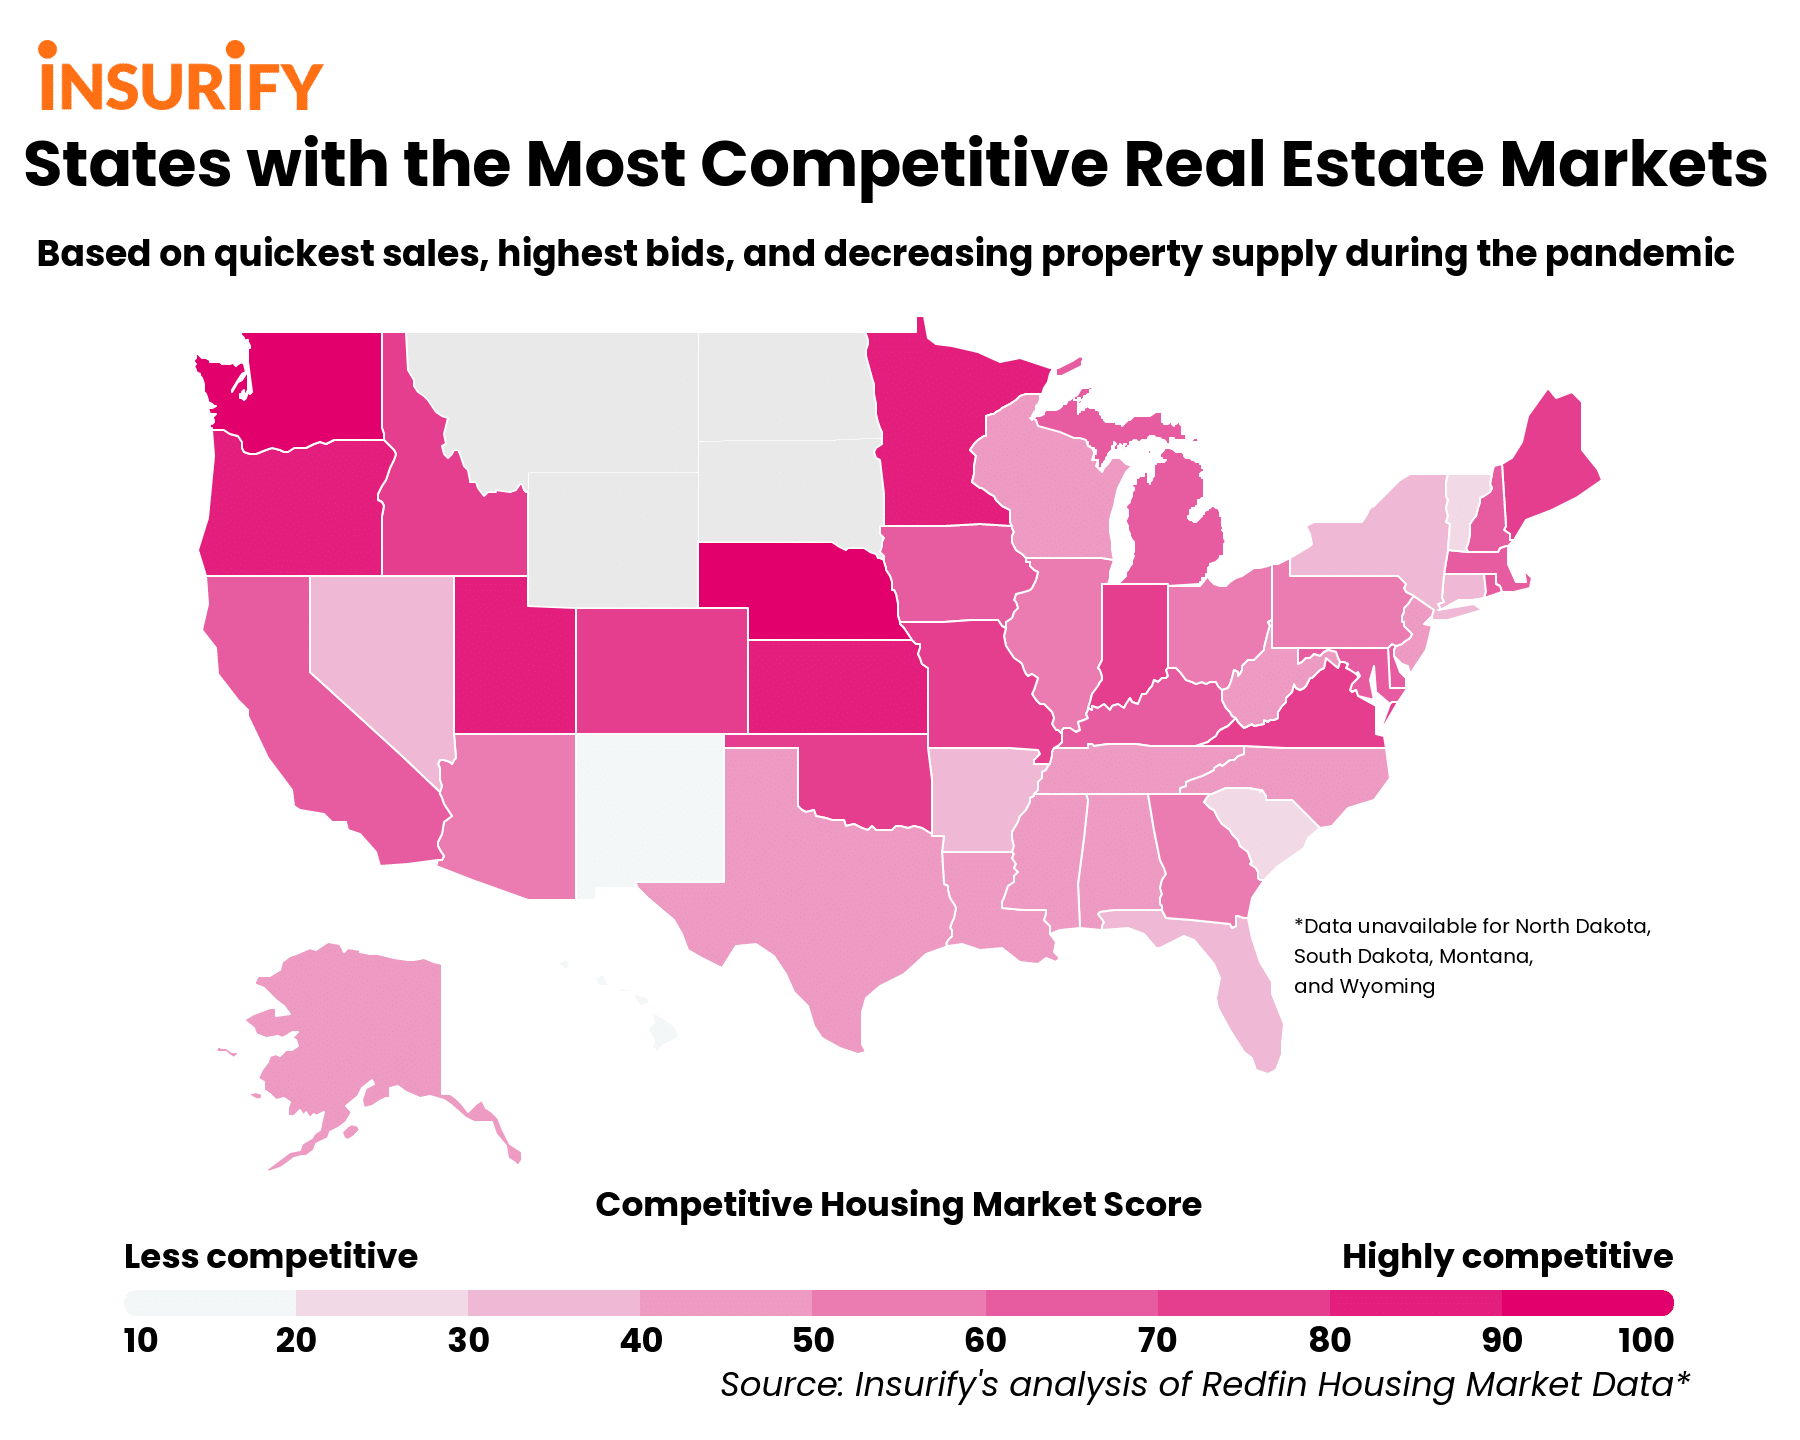 A heat map showing how competitive the housing market in each state has been during the pandemic in 2020.